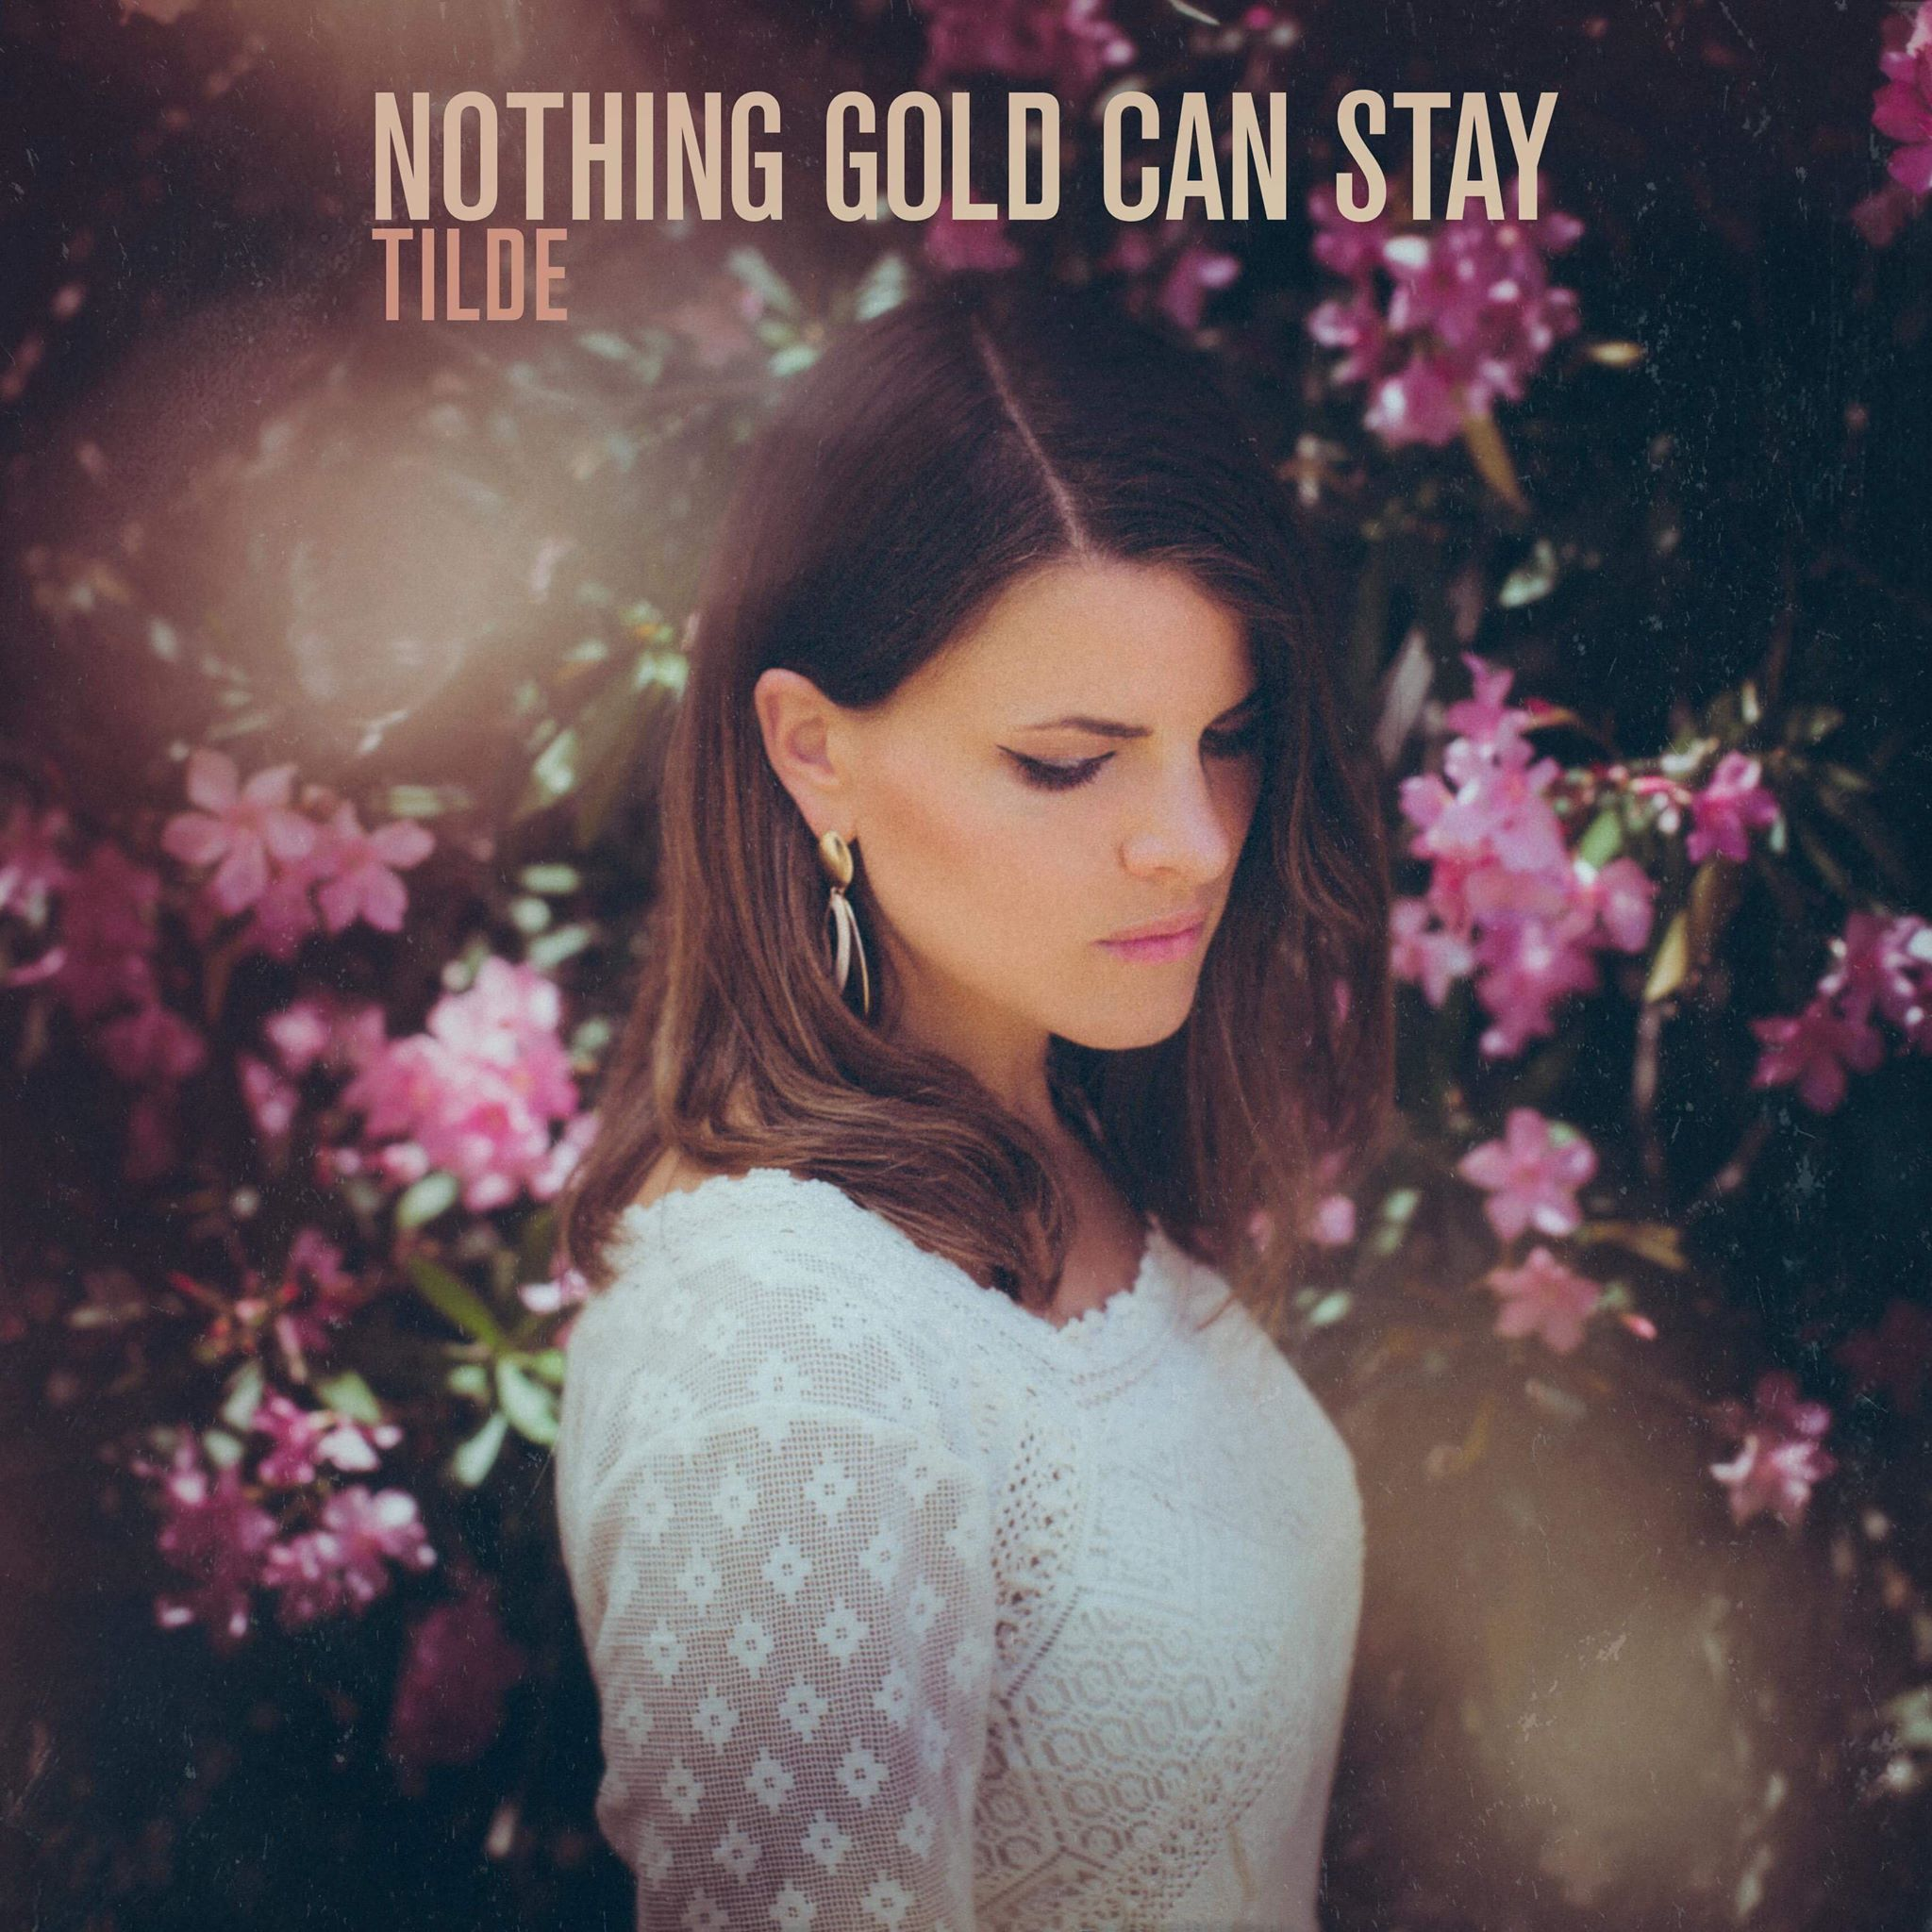 Nothing Gold Can Stay (2018)